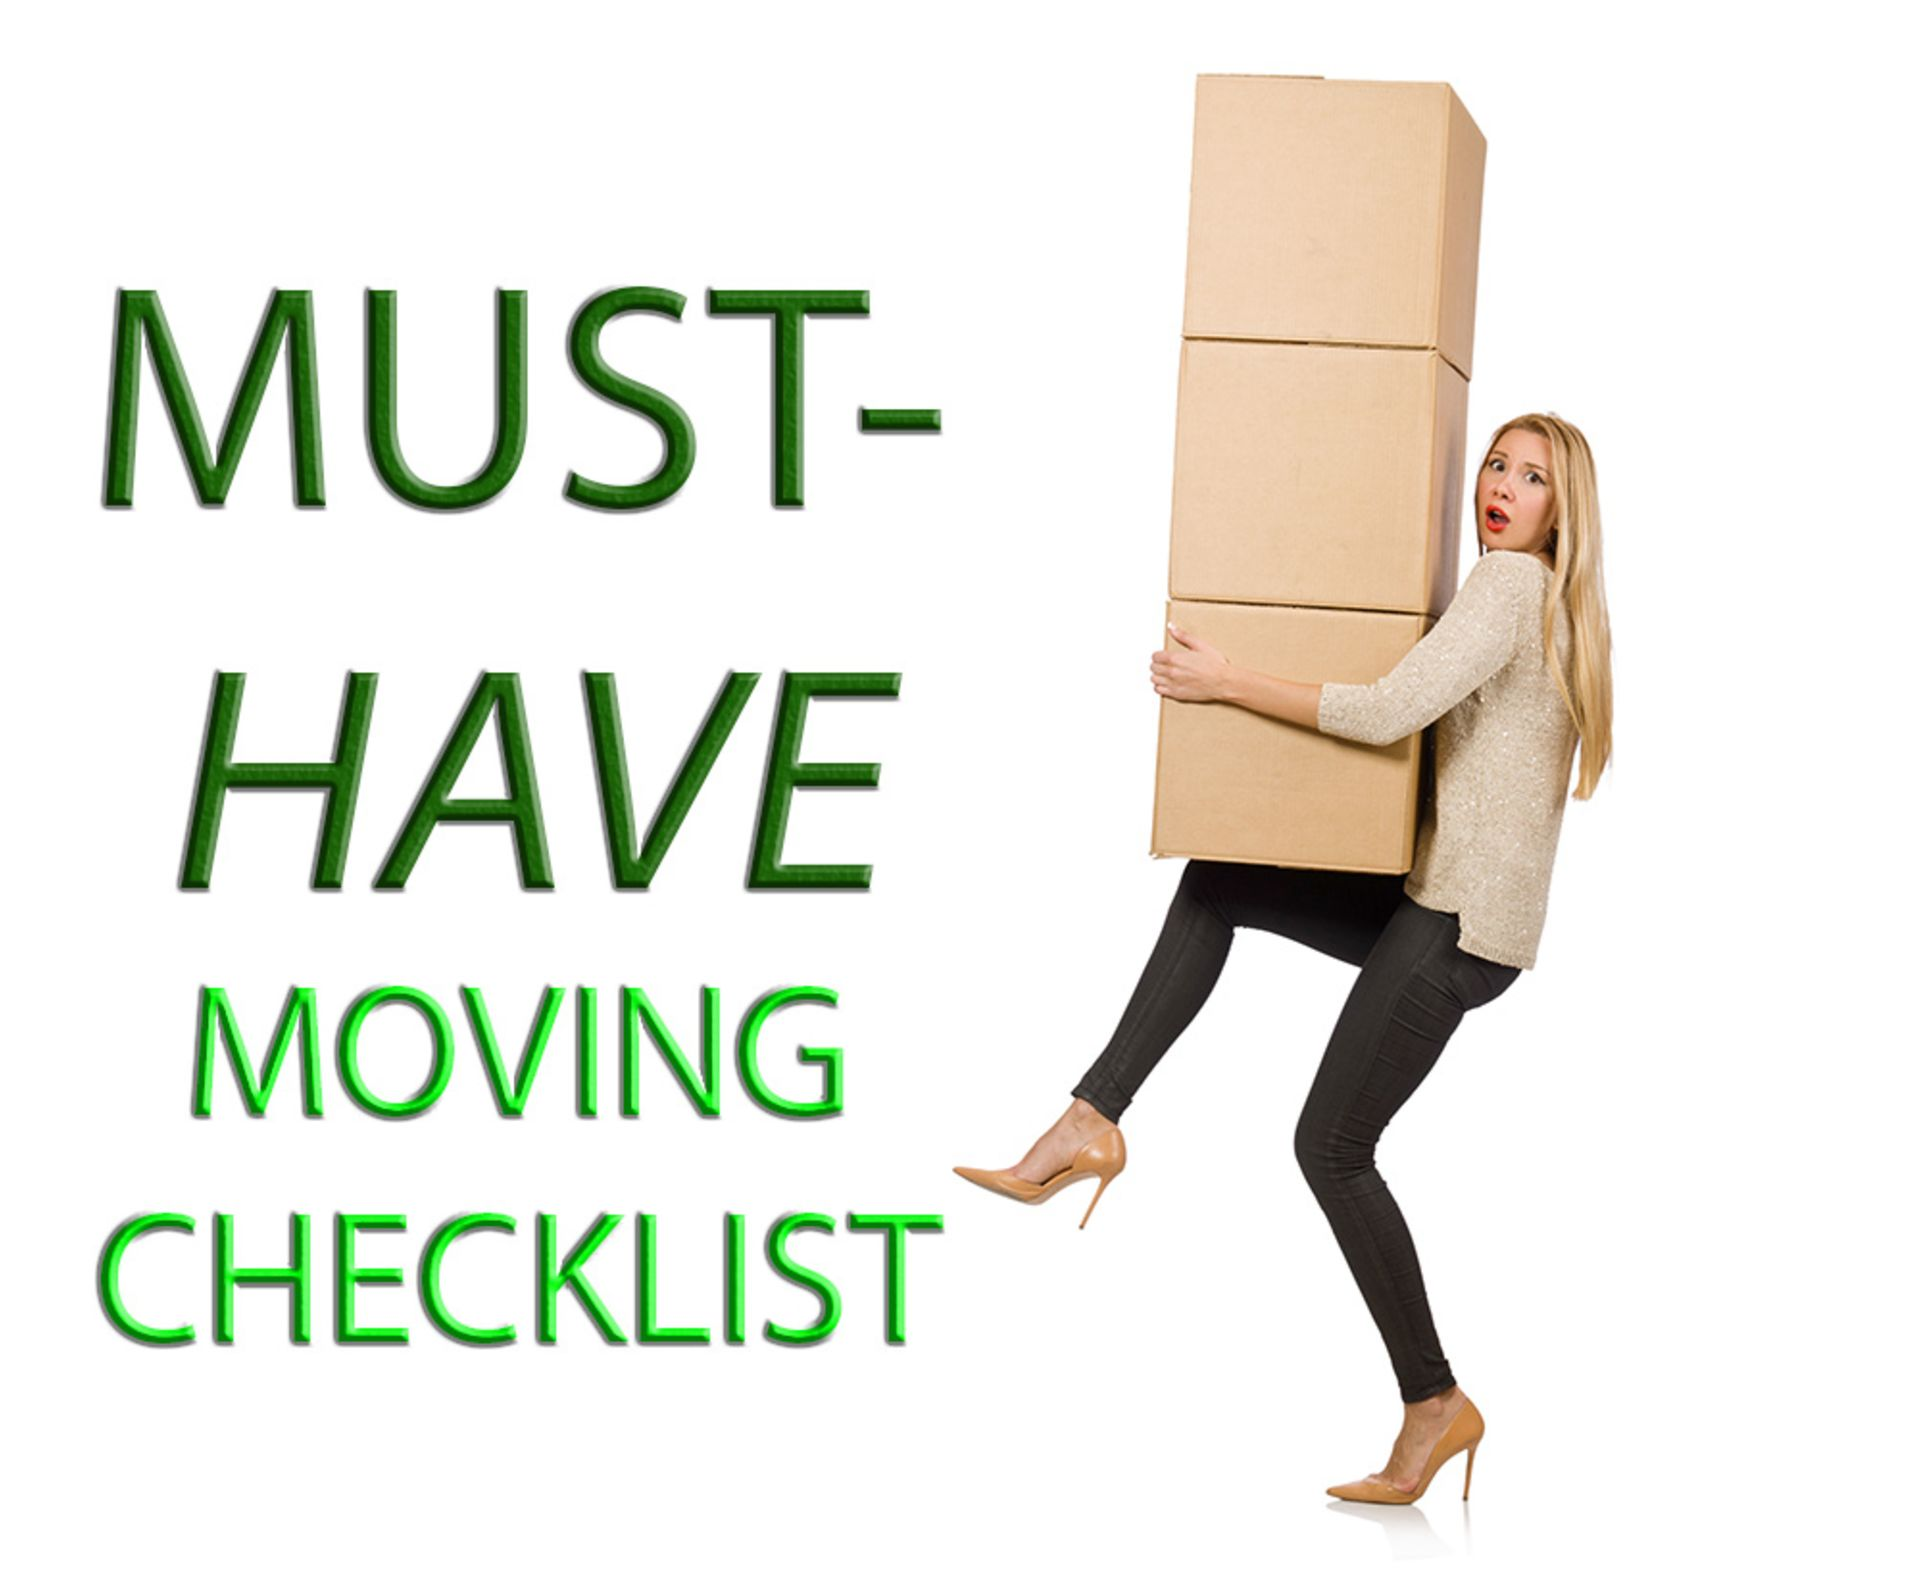 Must-Have Moving Checklist